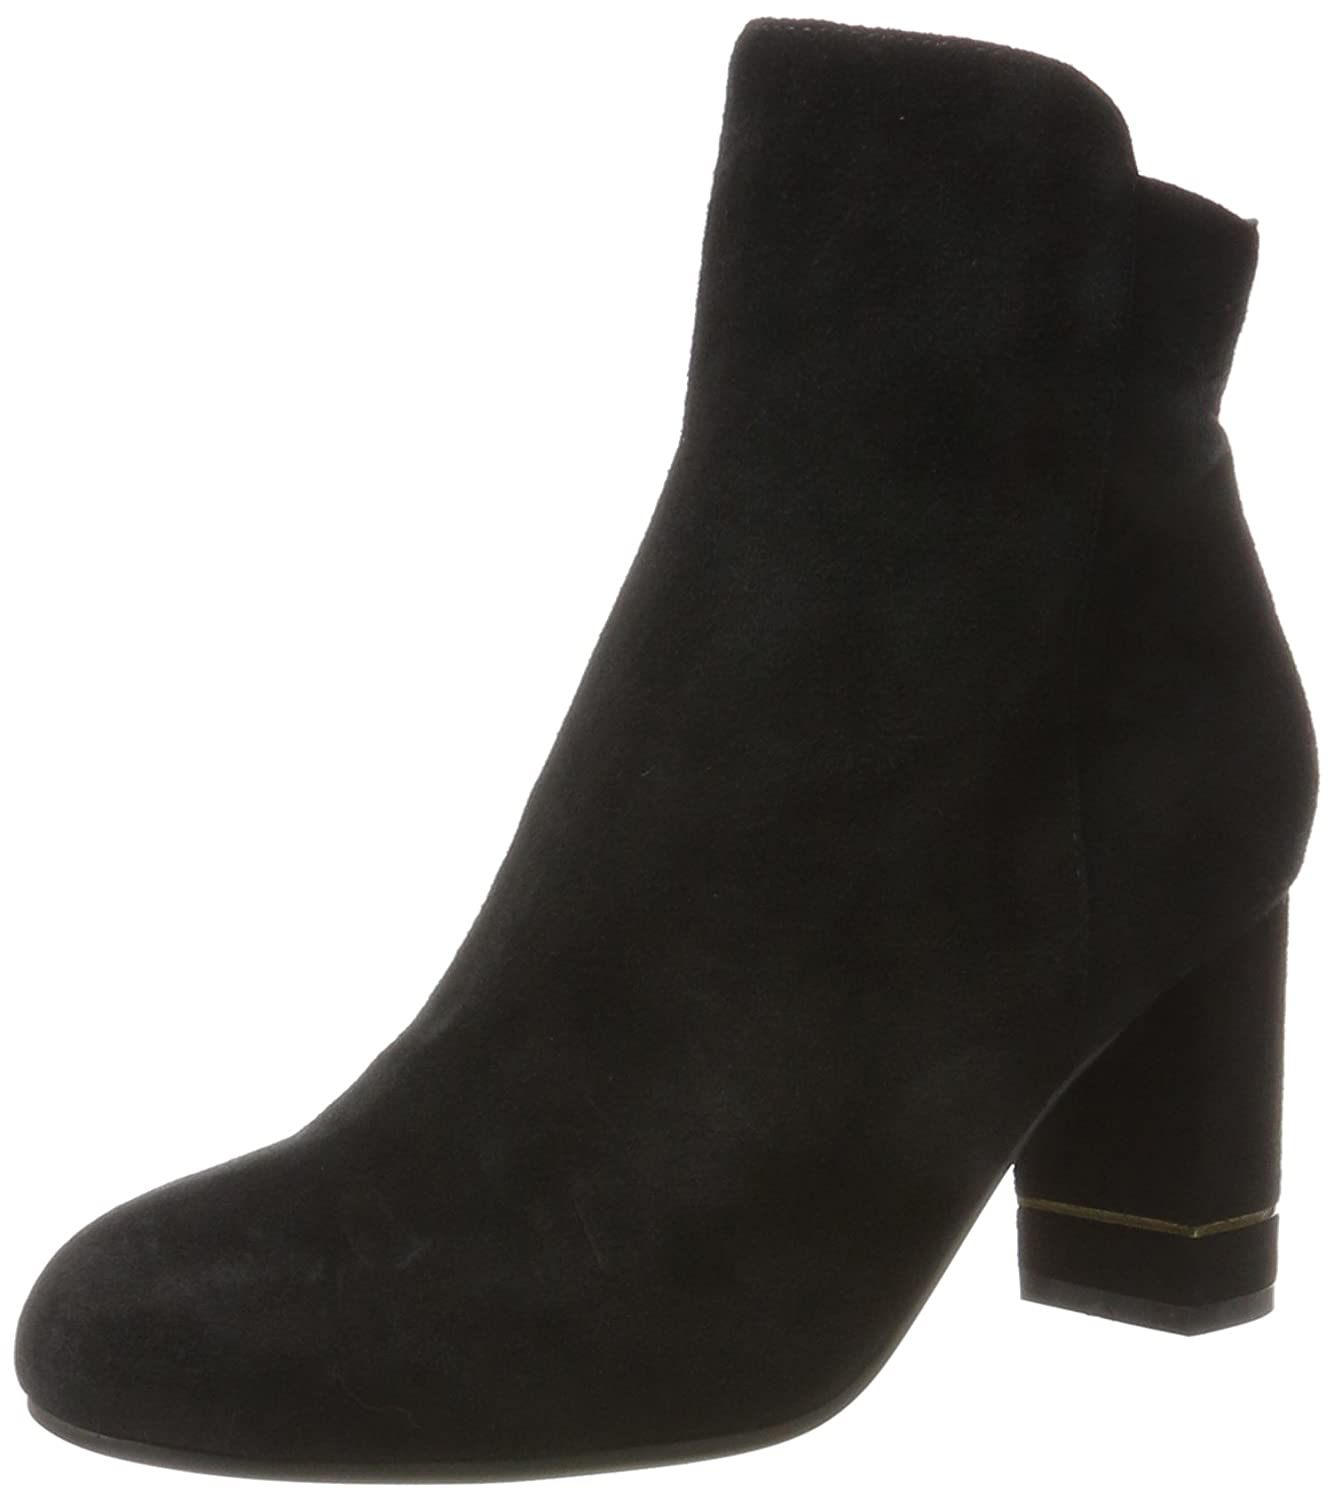 Shoe The Bear Eleste S, Botas para Mujer39 EU|Negro (110 Black)